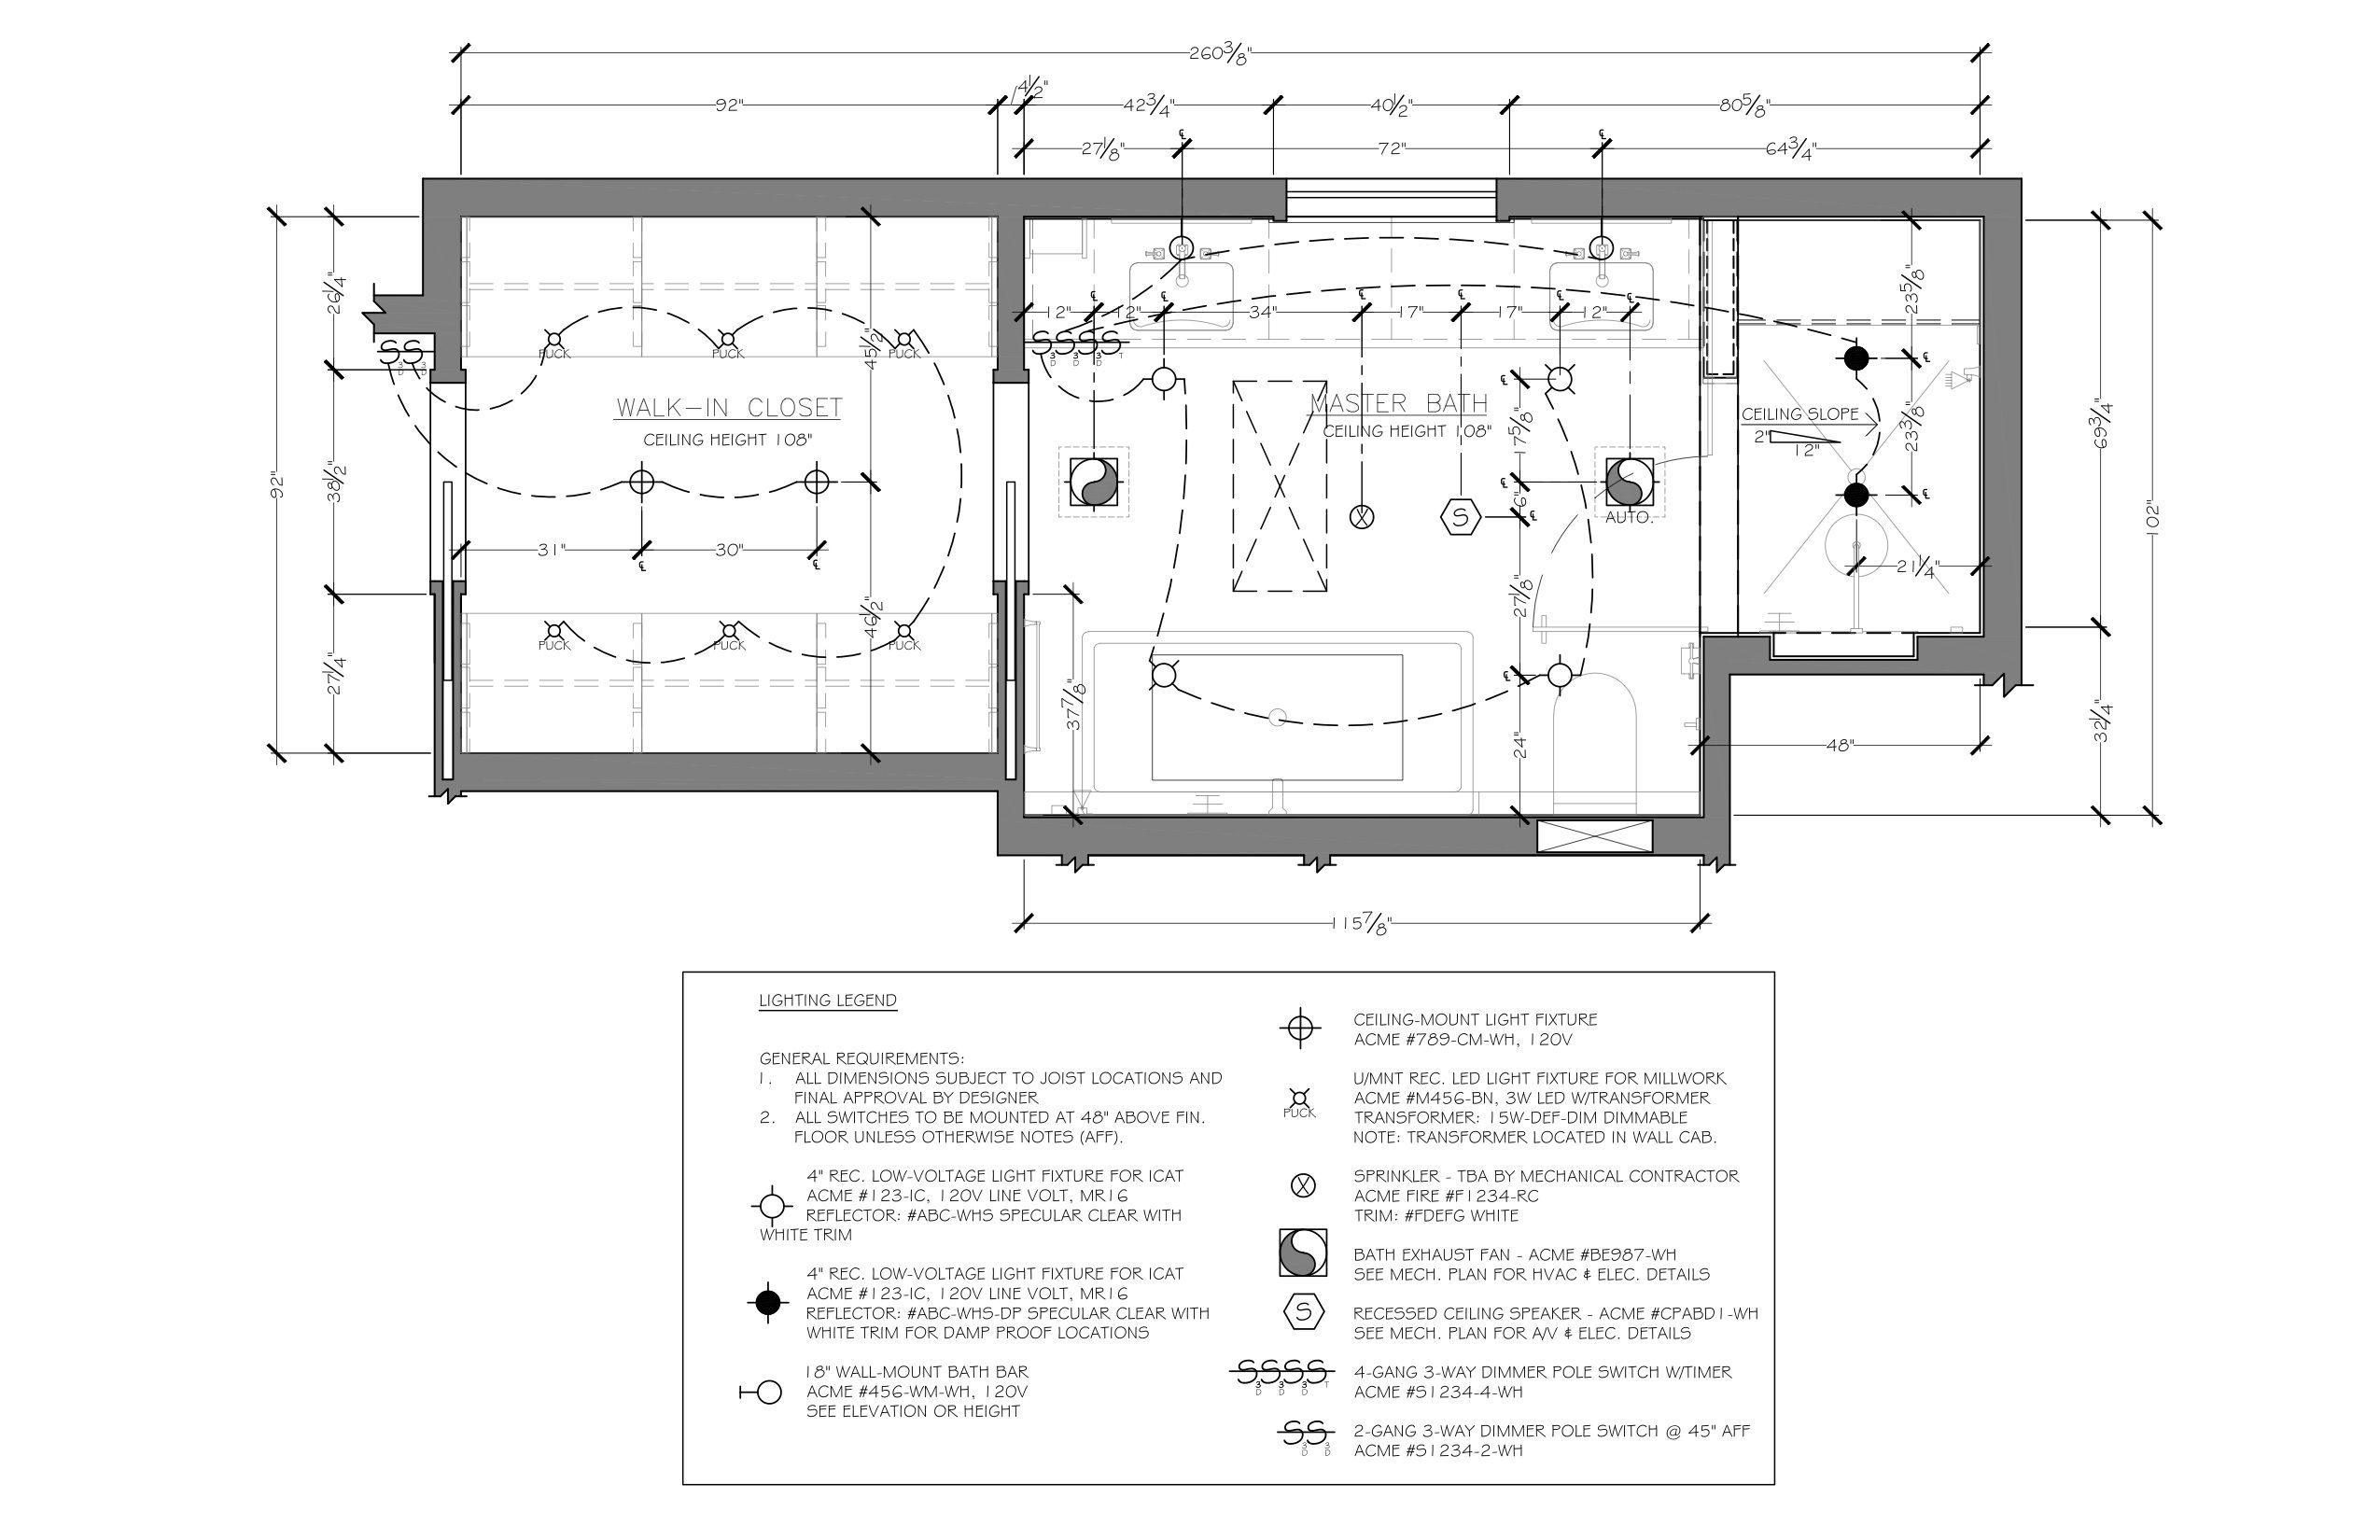 hight resolution of bathroom reflected ceiling plan example c 2013 corey klassen ckd used under permission from the national kitchen bath association